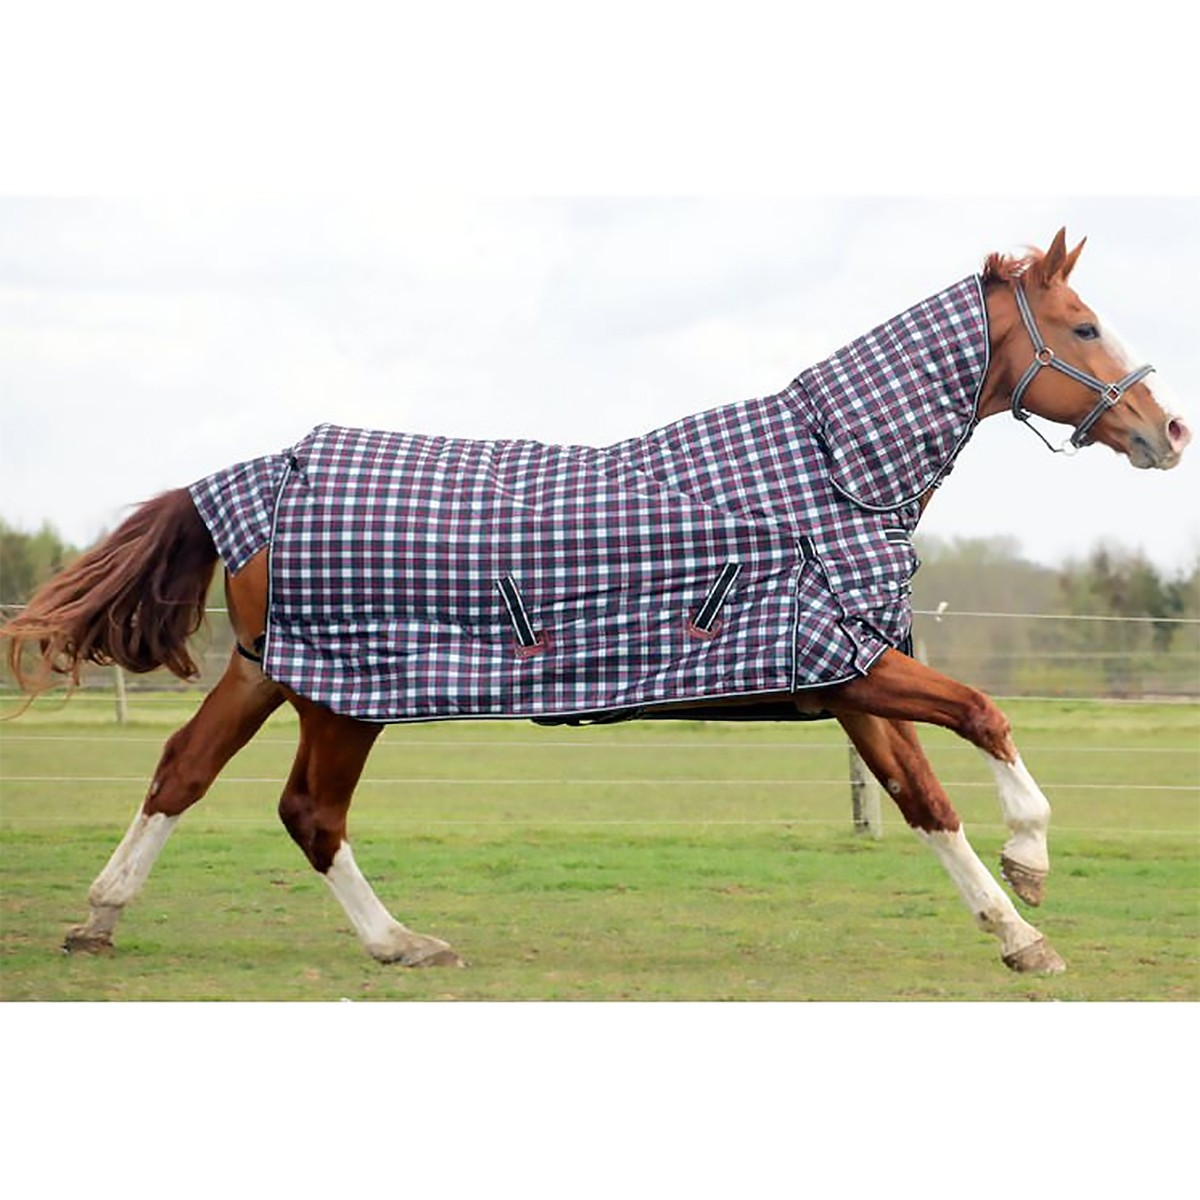 Rhinegold 1000D 320g Glacier Check Heavyweight Combo Turnout Rug